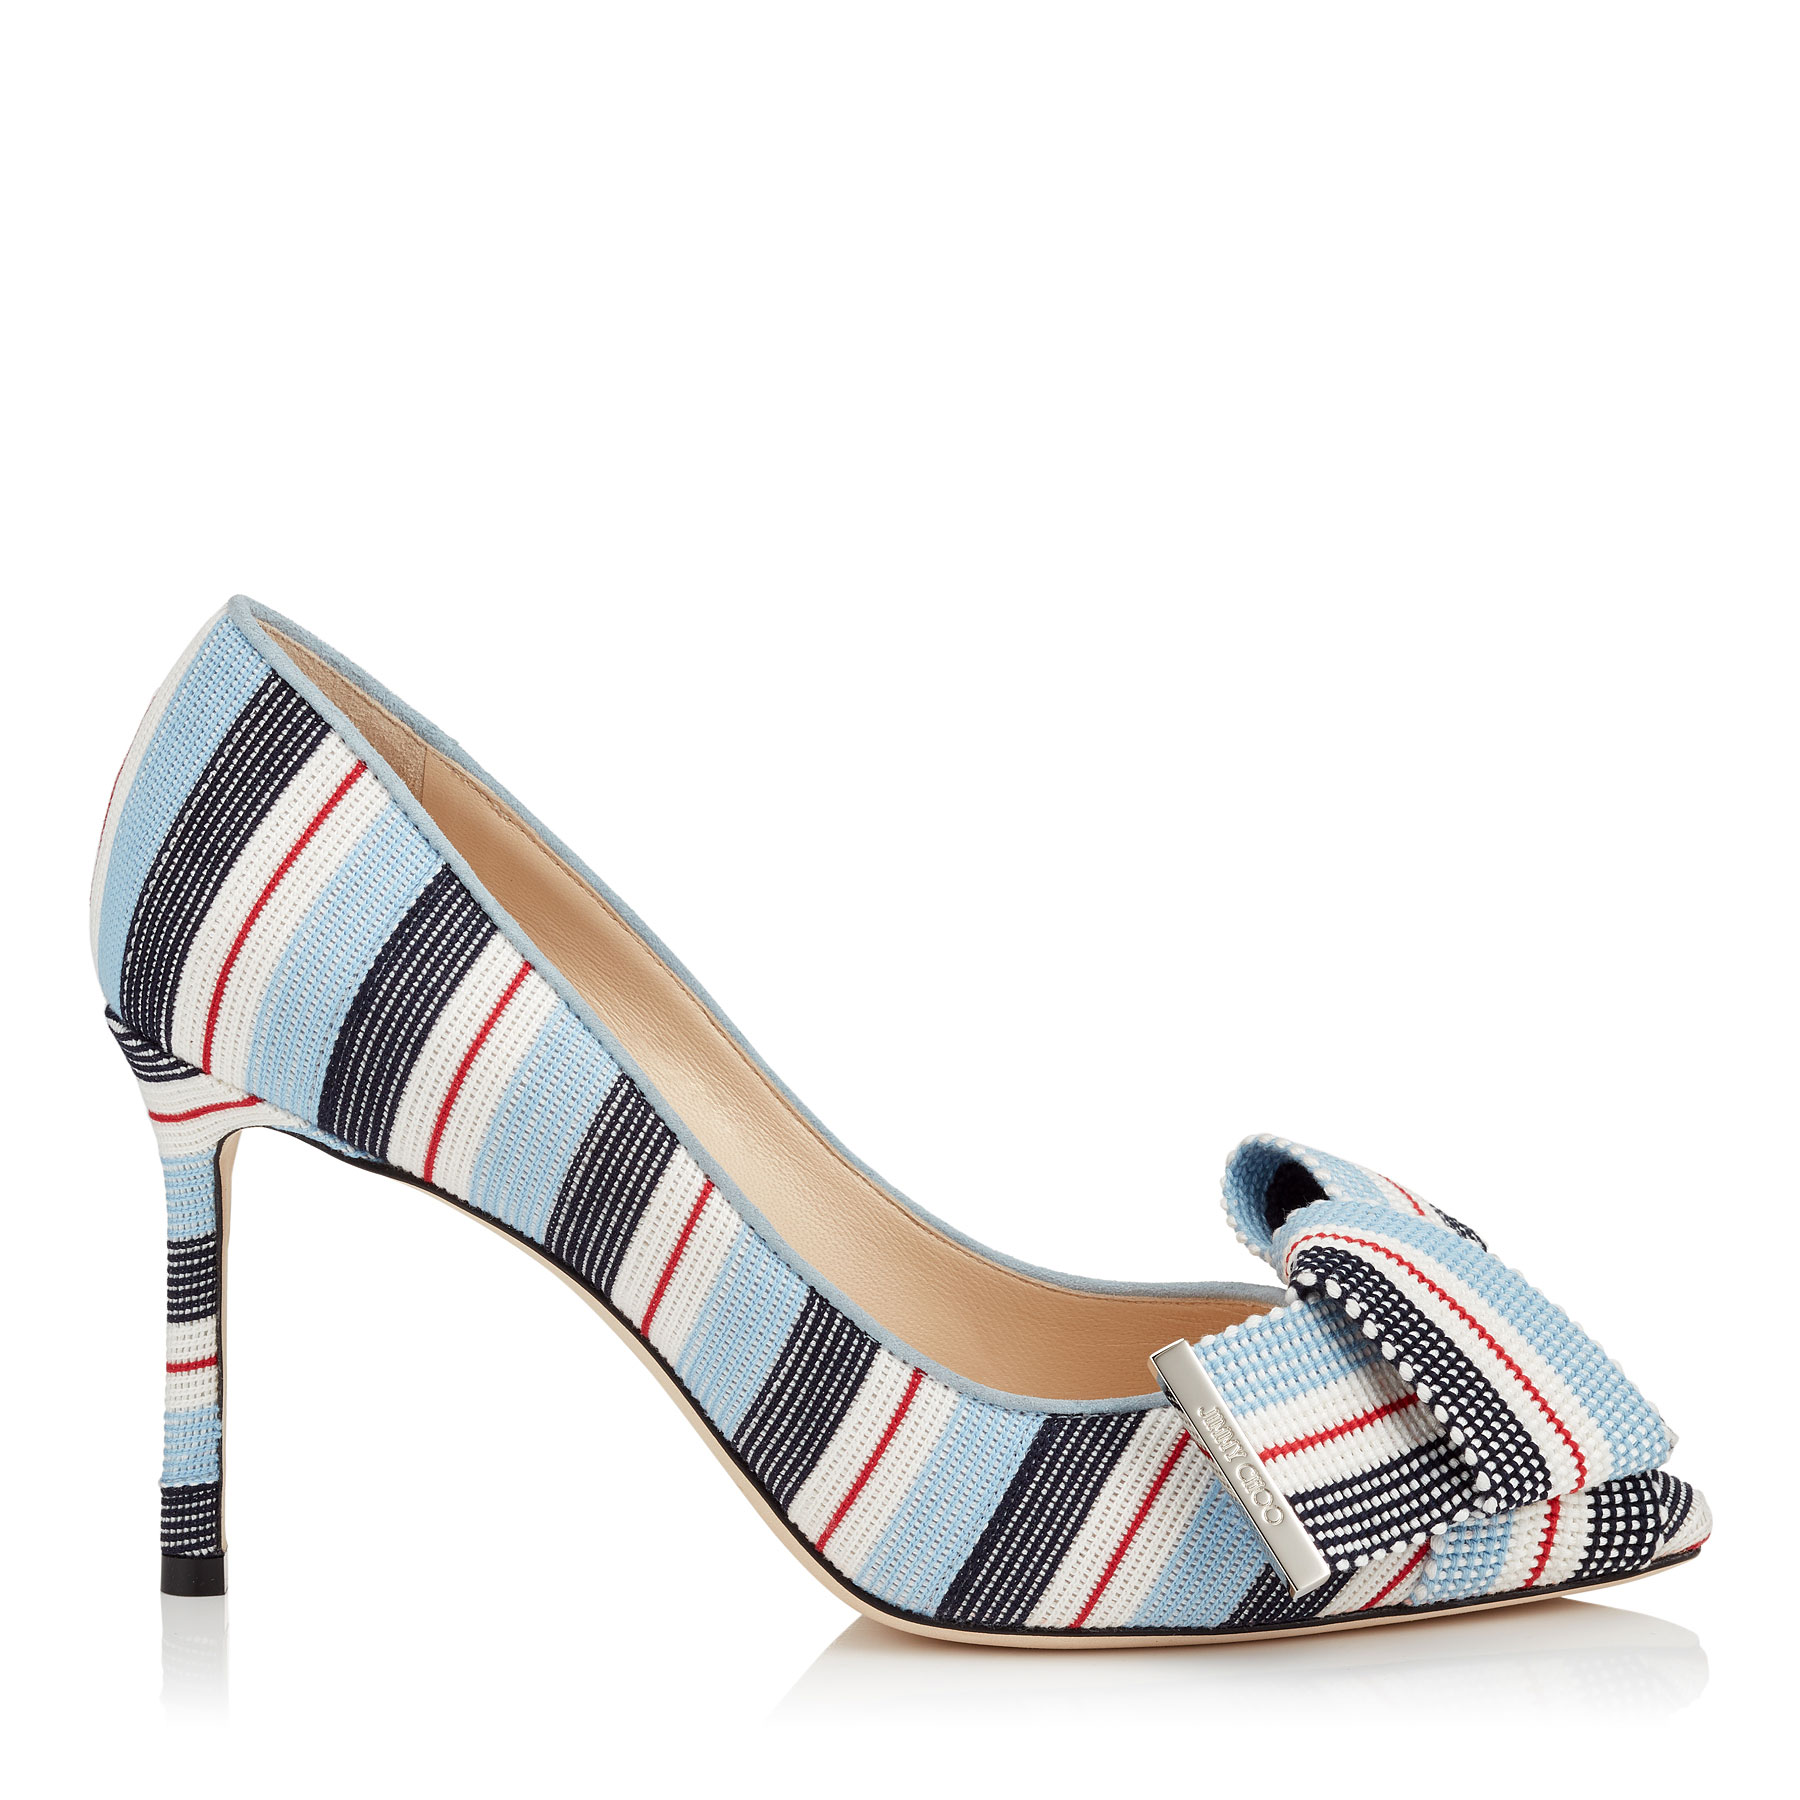 TEGAN 85 Aqua Mix Tape Pointy Toe Pumps with Bow Detailing by Jimmy Choo